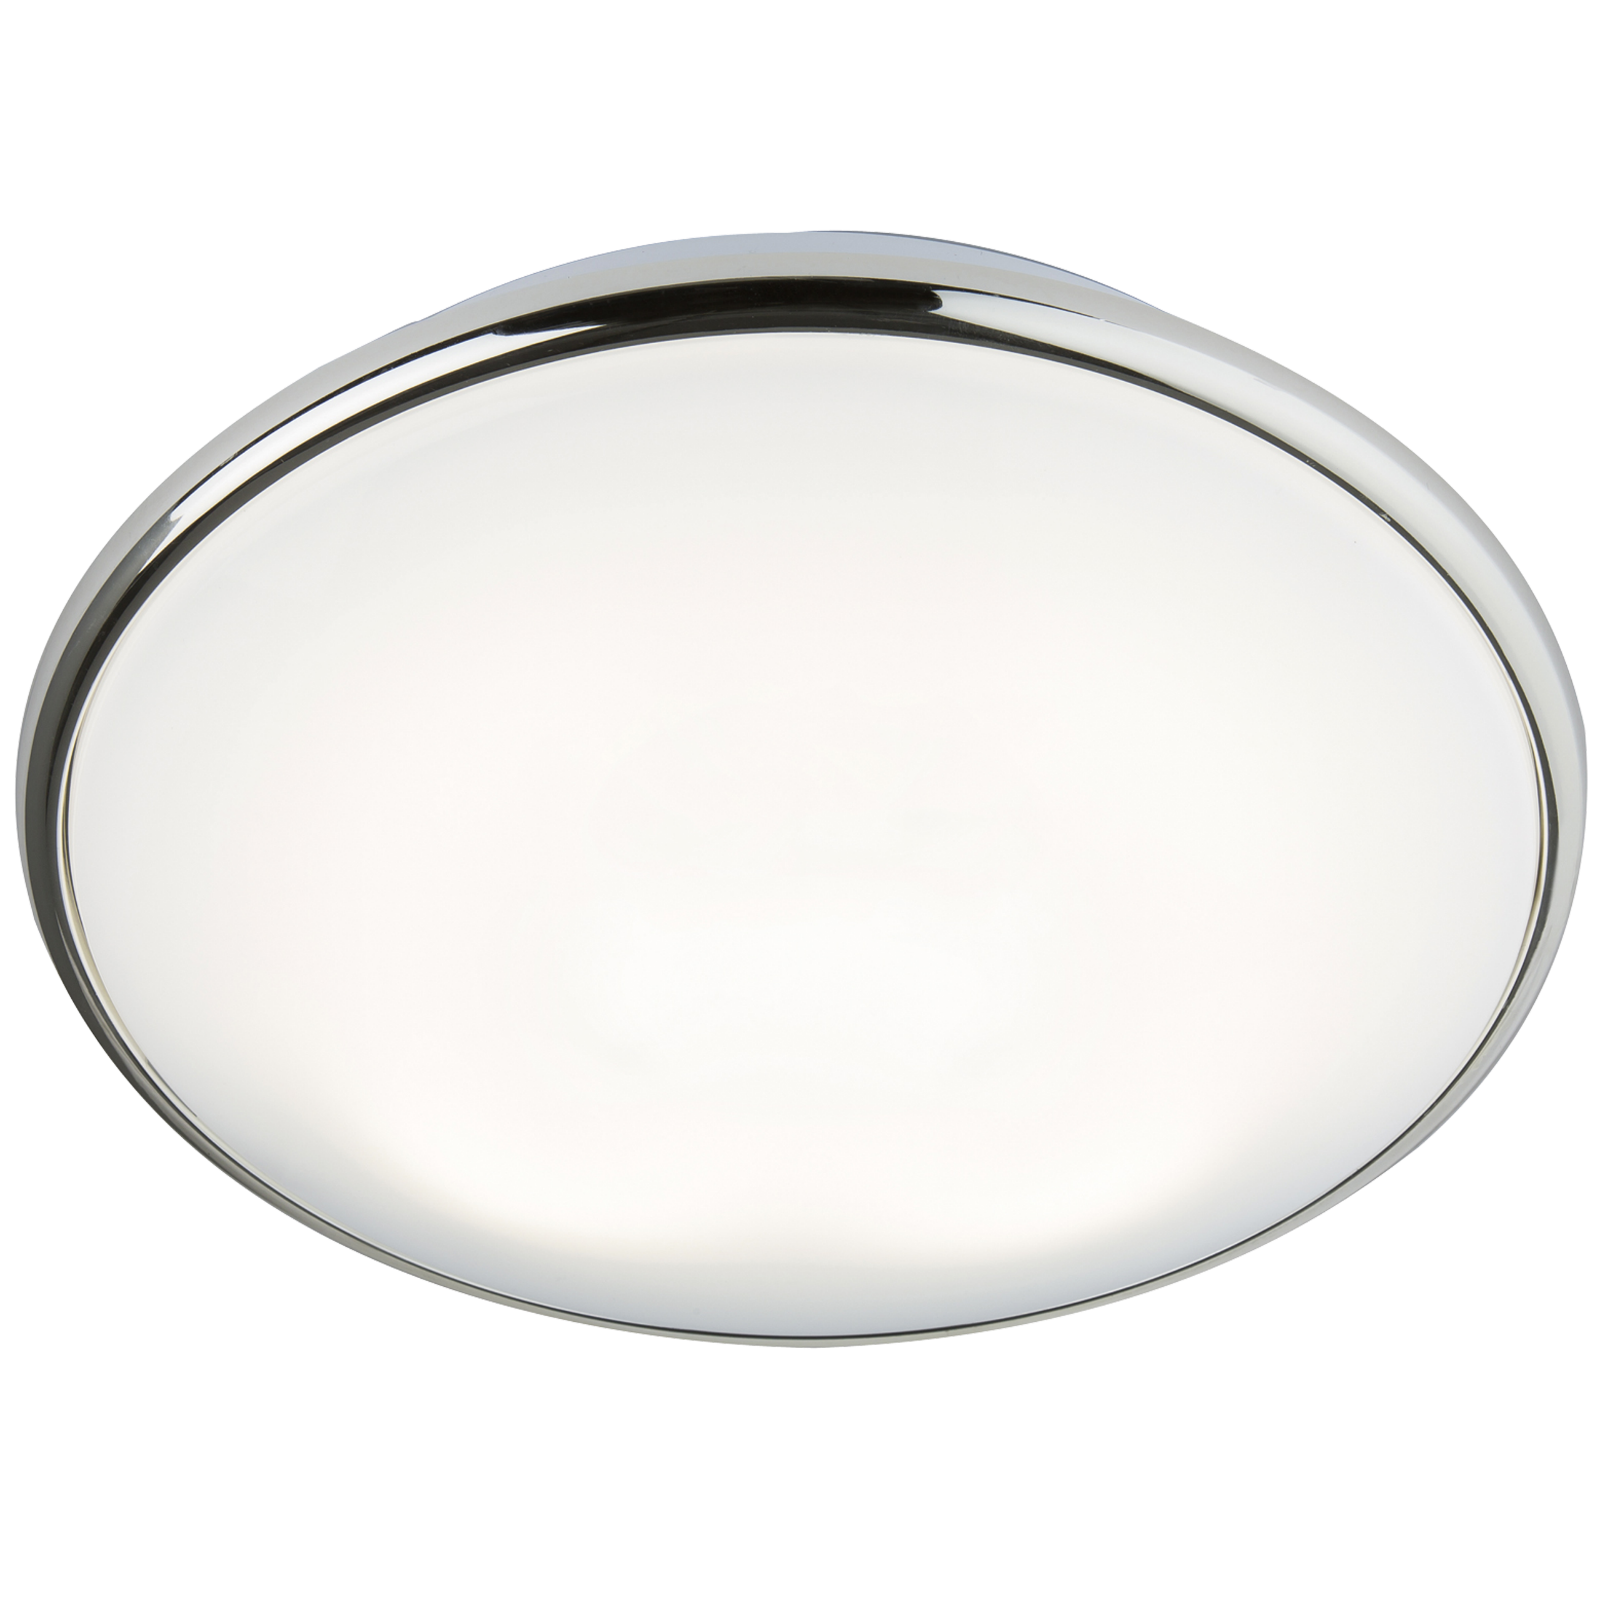 IP20 28W 2D HF Bulkhead with Opal Diffuser and Chrome Base